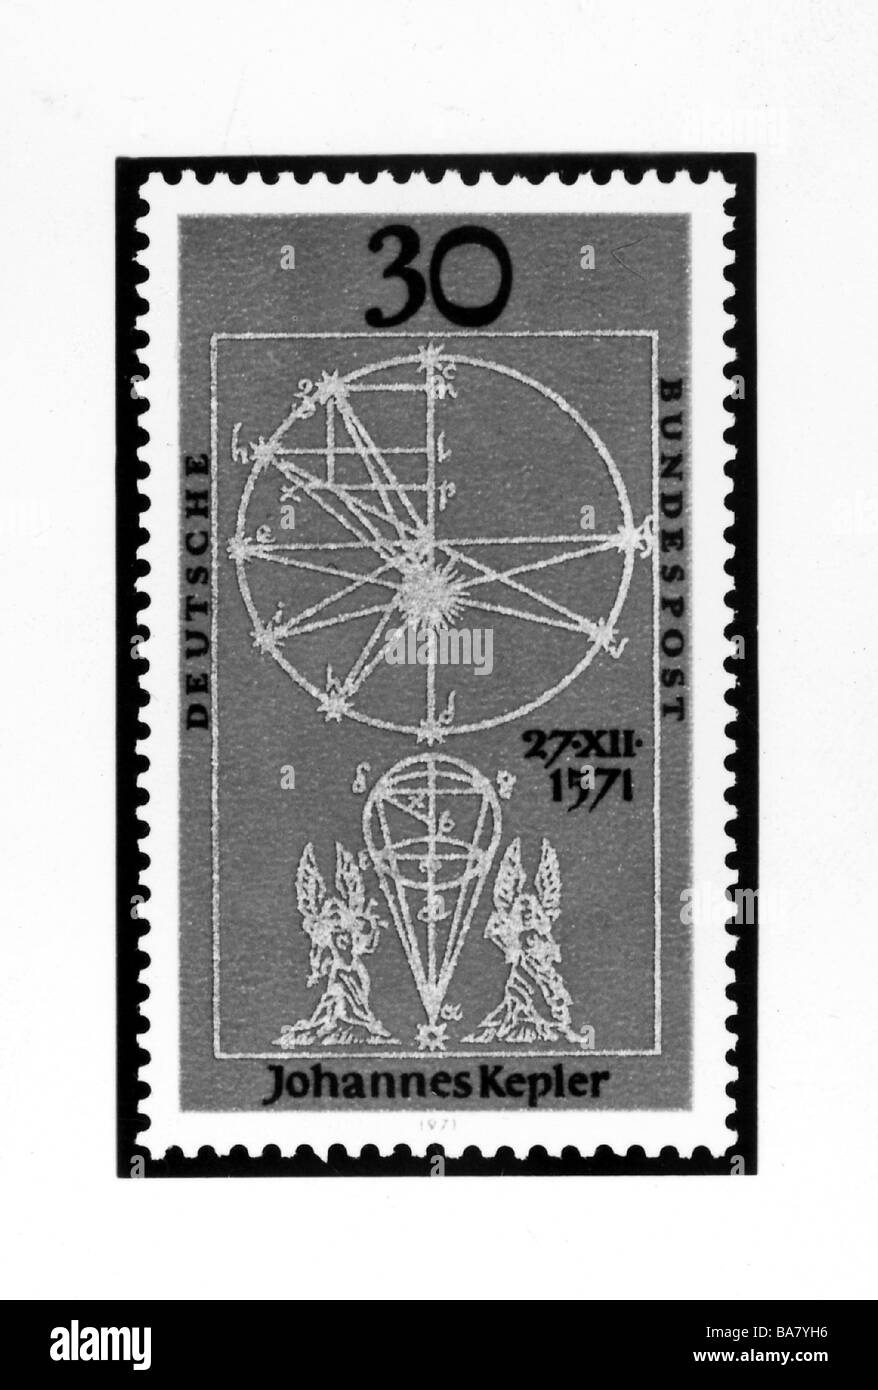 Kepler, Johannes, 27.12.1571 - 15.11.1630, astronome allemand, 30 pfennig stamp avec les illustrations de son ouvrage Photo Stock